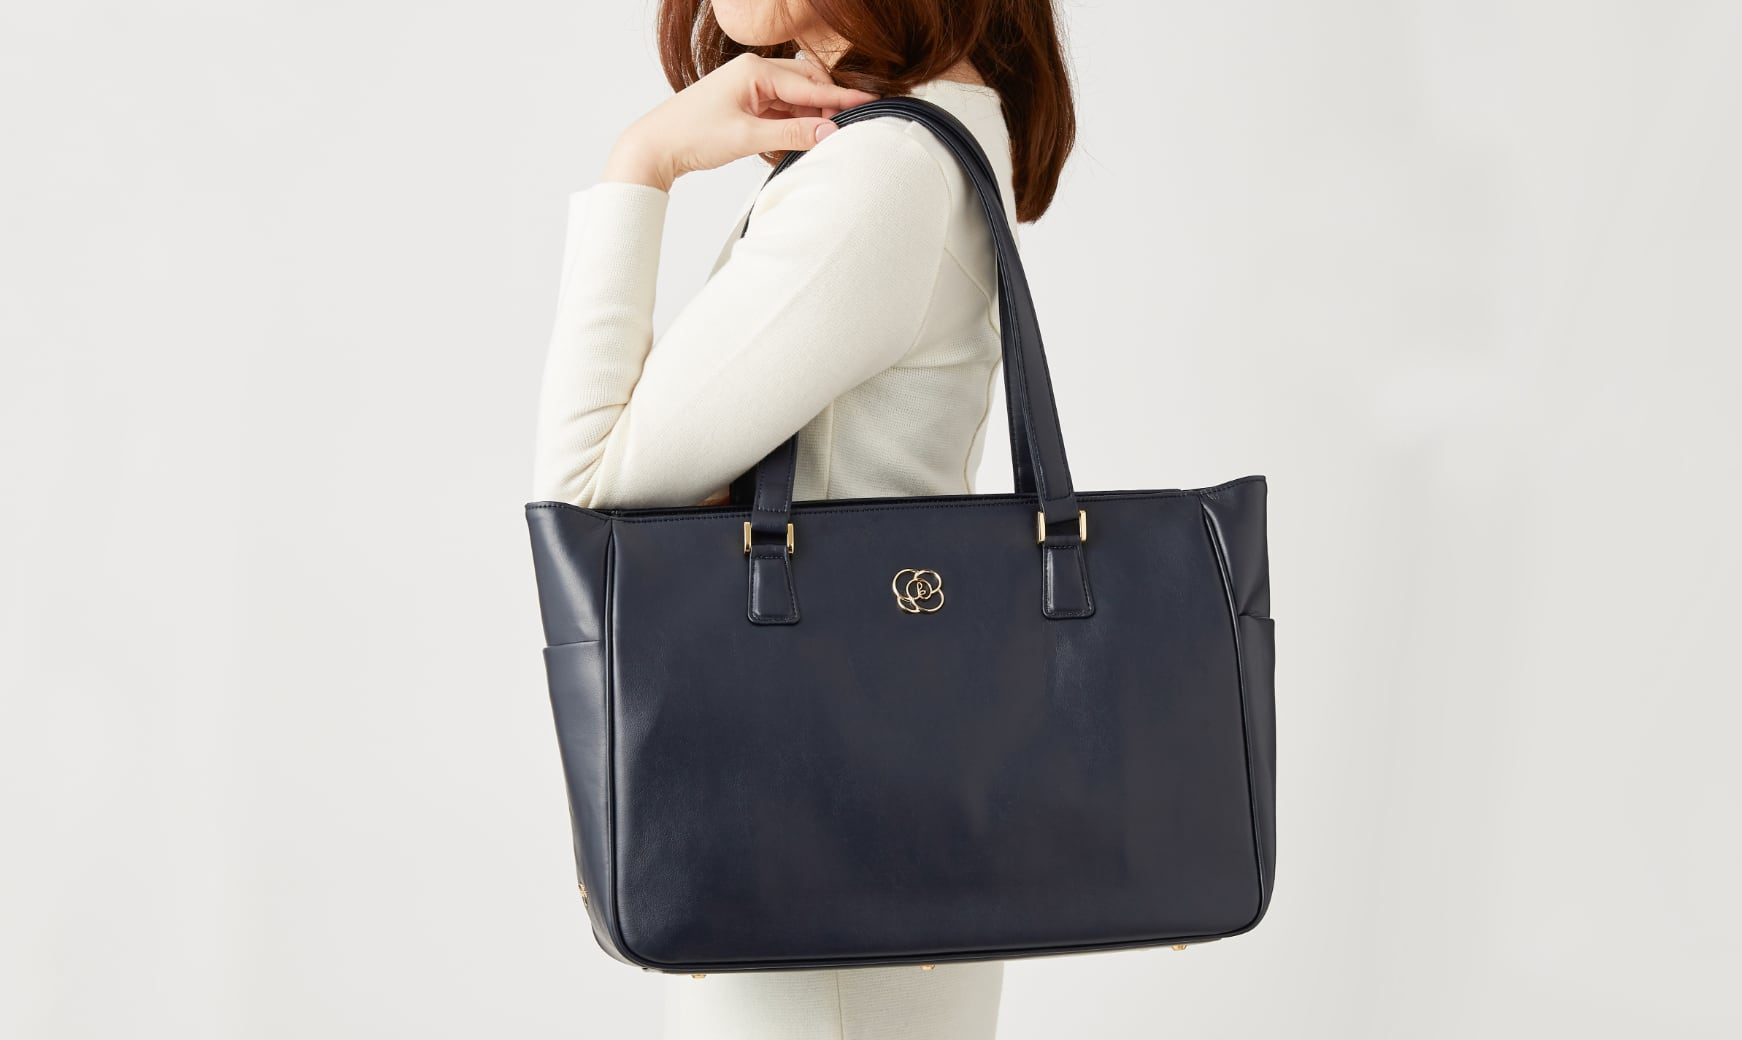 10_Airy_Tote_Long_Shoulder_Straps.jpg